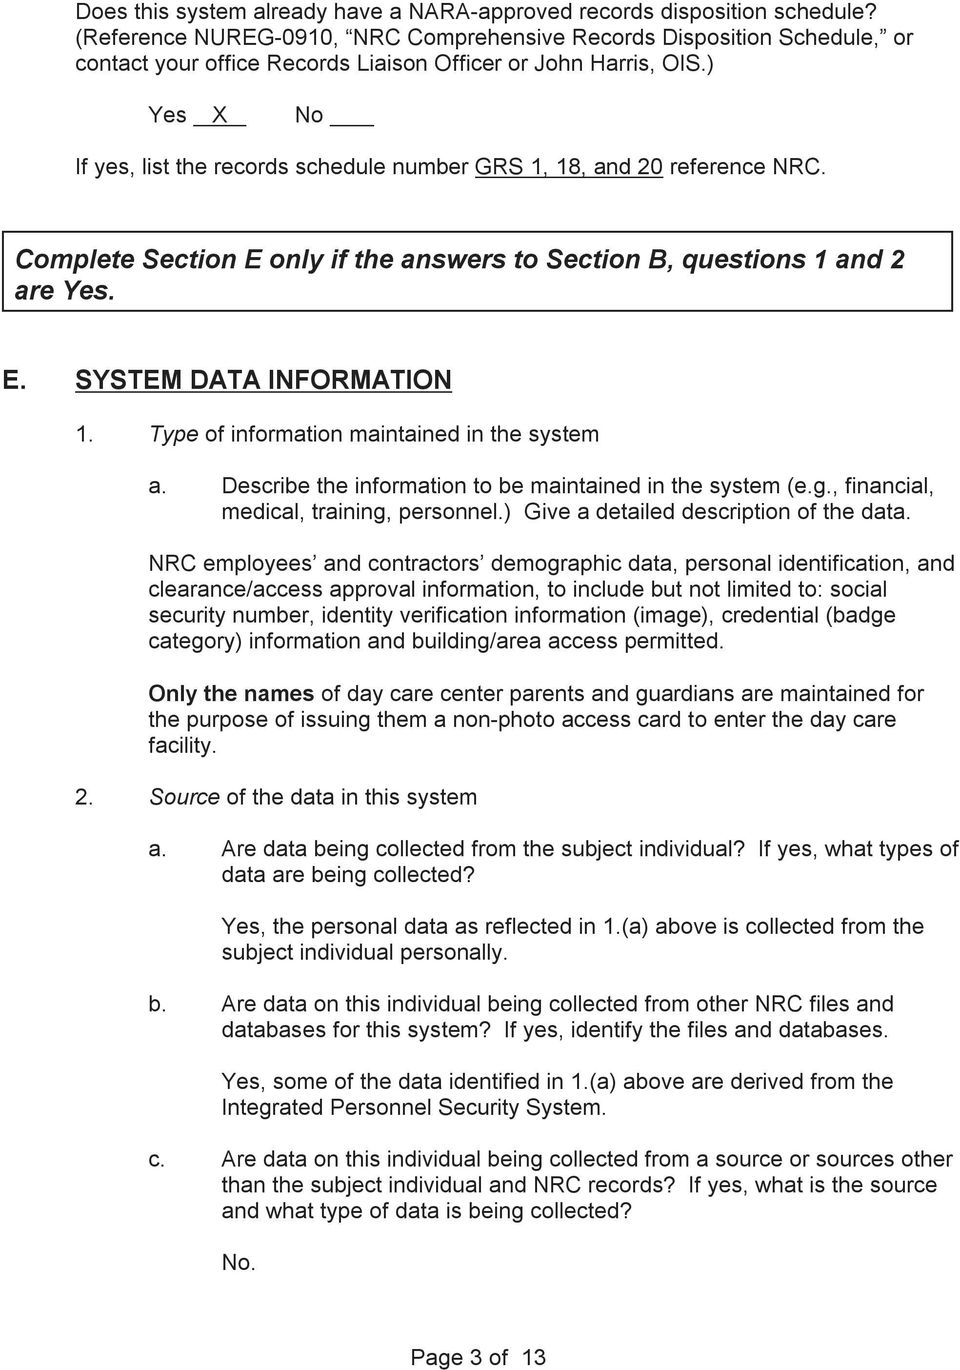 ) Yes X No If yes, list the records schedule number GRS 1, 18, and 20 reference NRC. Complete Section E only if the answers to Section B, questions 1 and 2 are Yes. E. SYSTEM DATA INFORMATION 1.